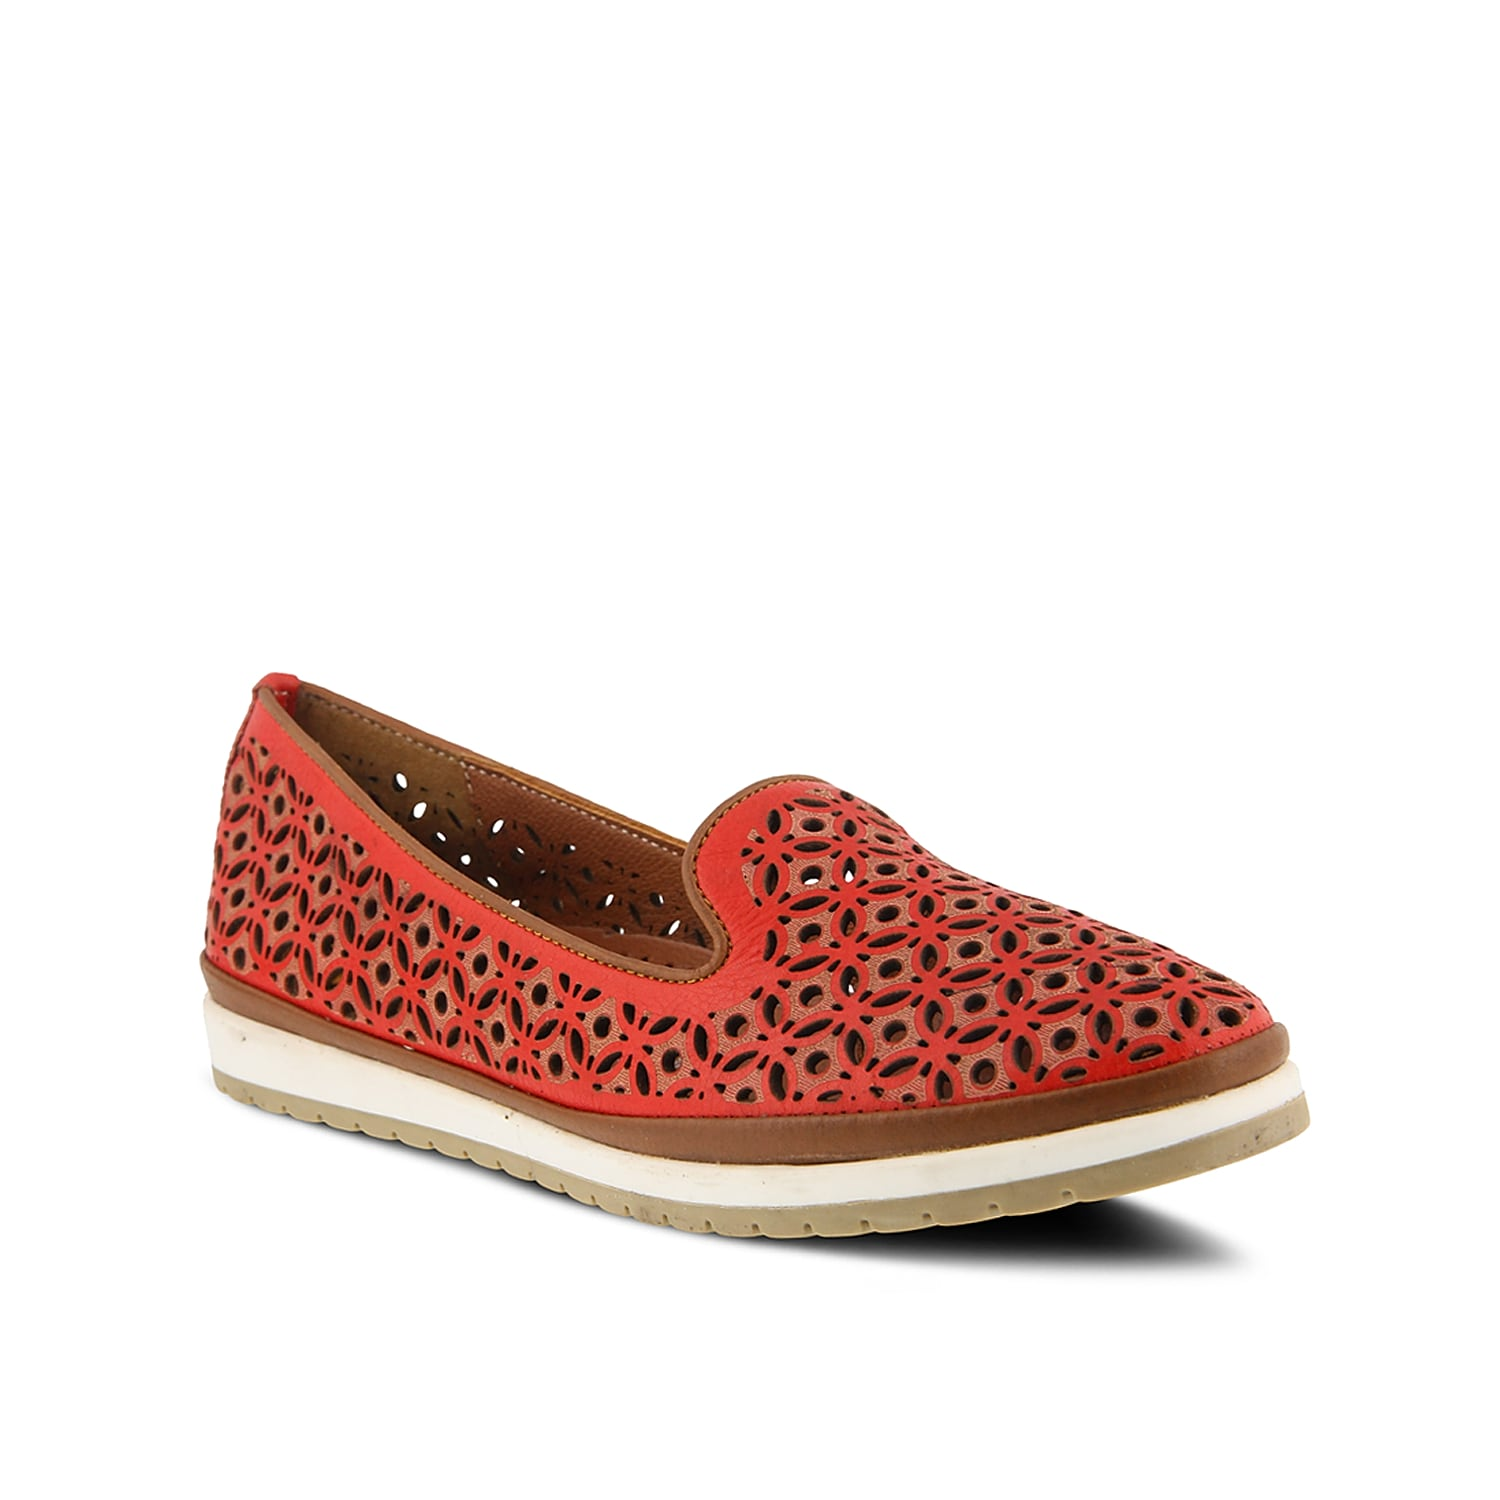 Slip into chic style with the Tulisa flat from Spring Step. Laser cut detailing, a cut away lip, and two-toned midsole adds an updated finishing touch to this leather flat.